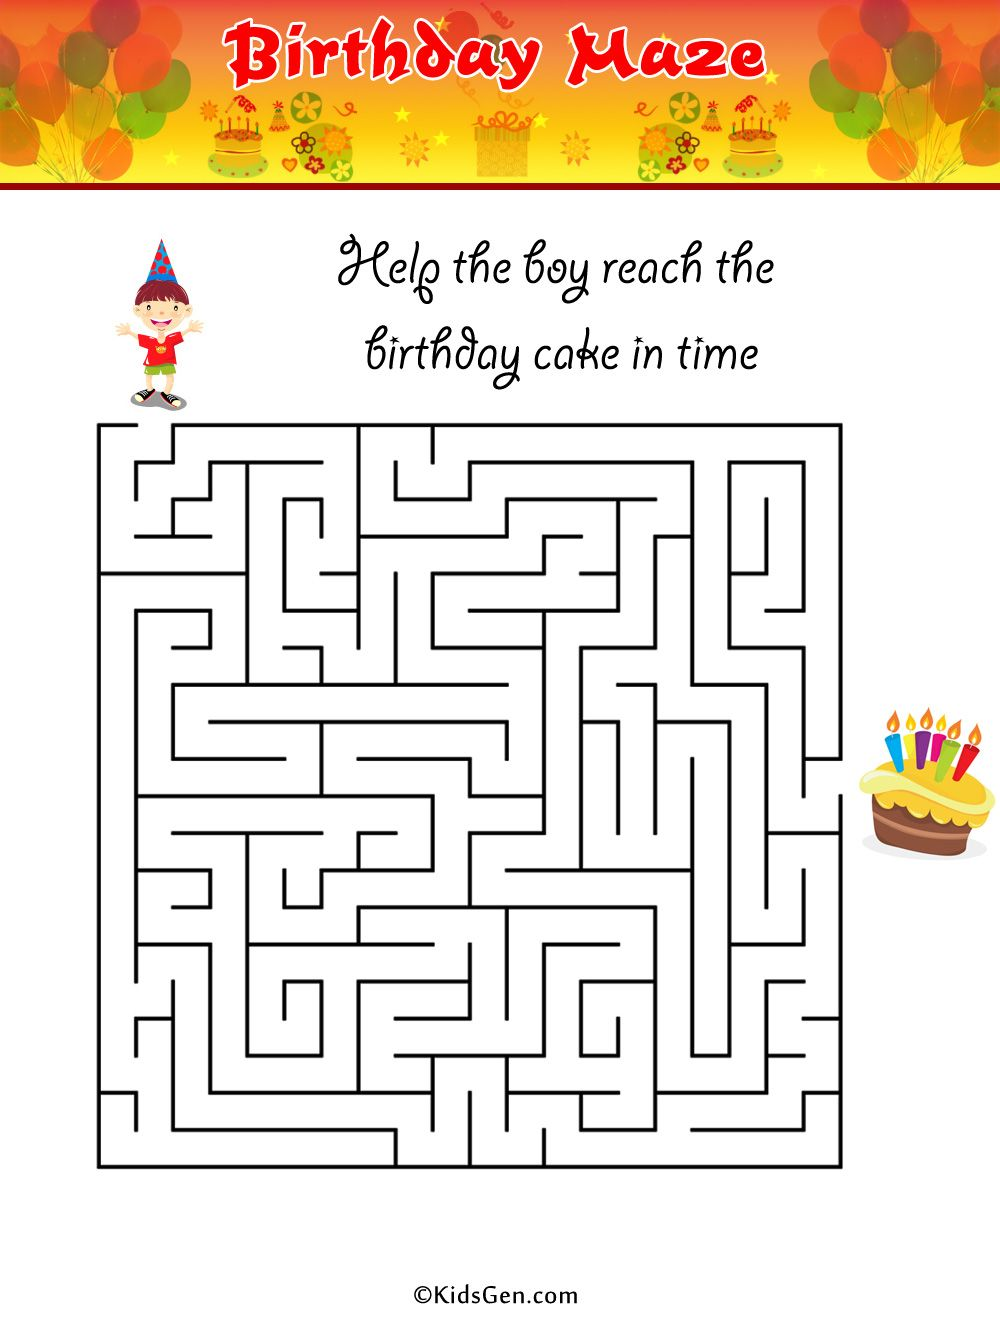 birthday maze Colouring Pages   Colouring pages [ 1333 x 1000 Pixel ]